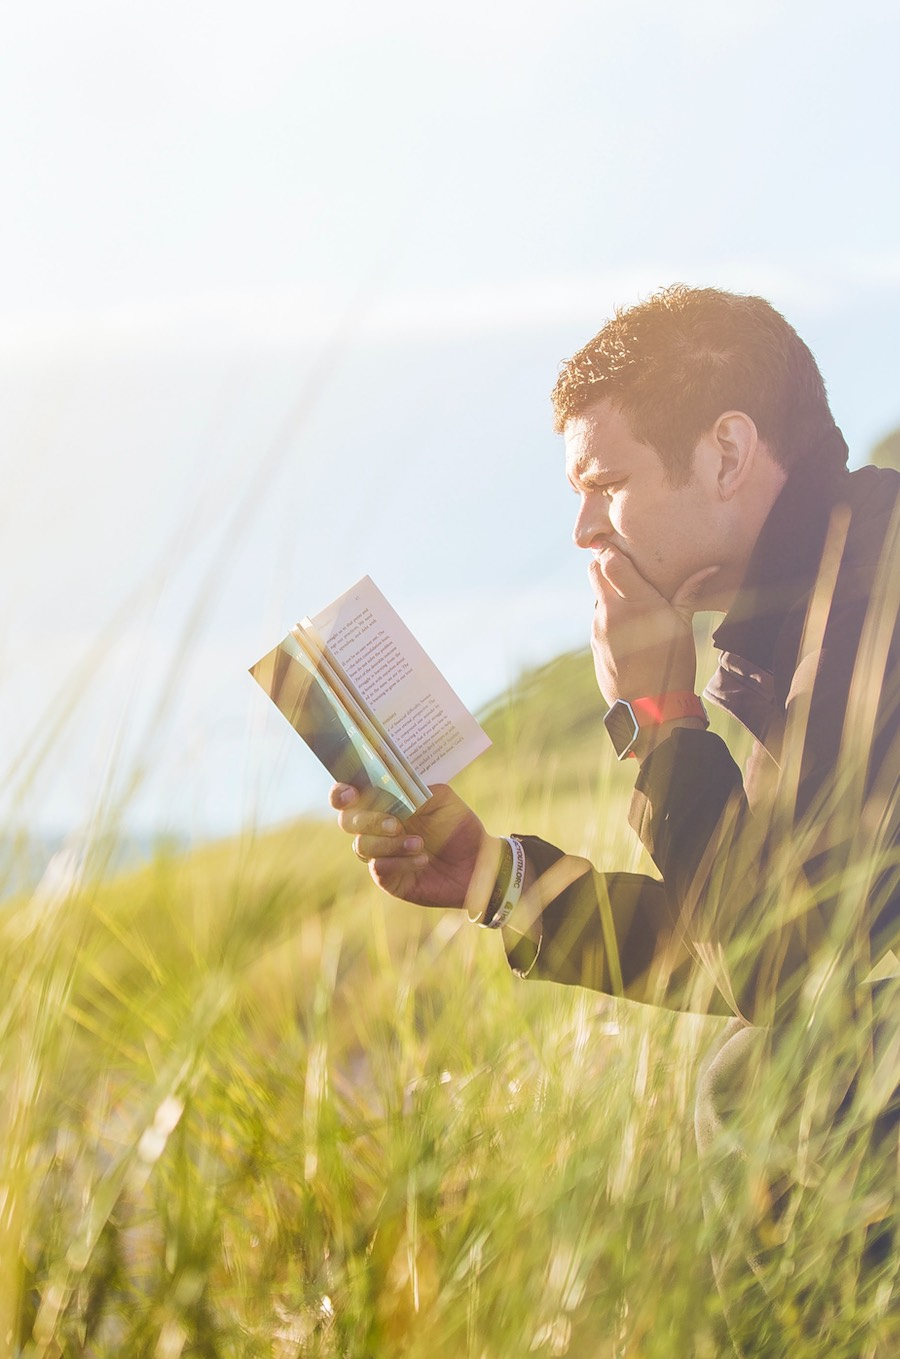 man reading book in a field